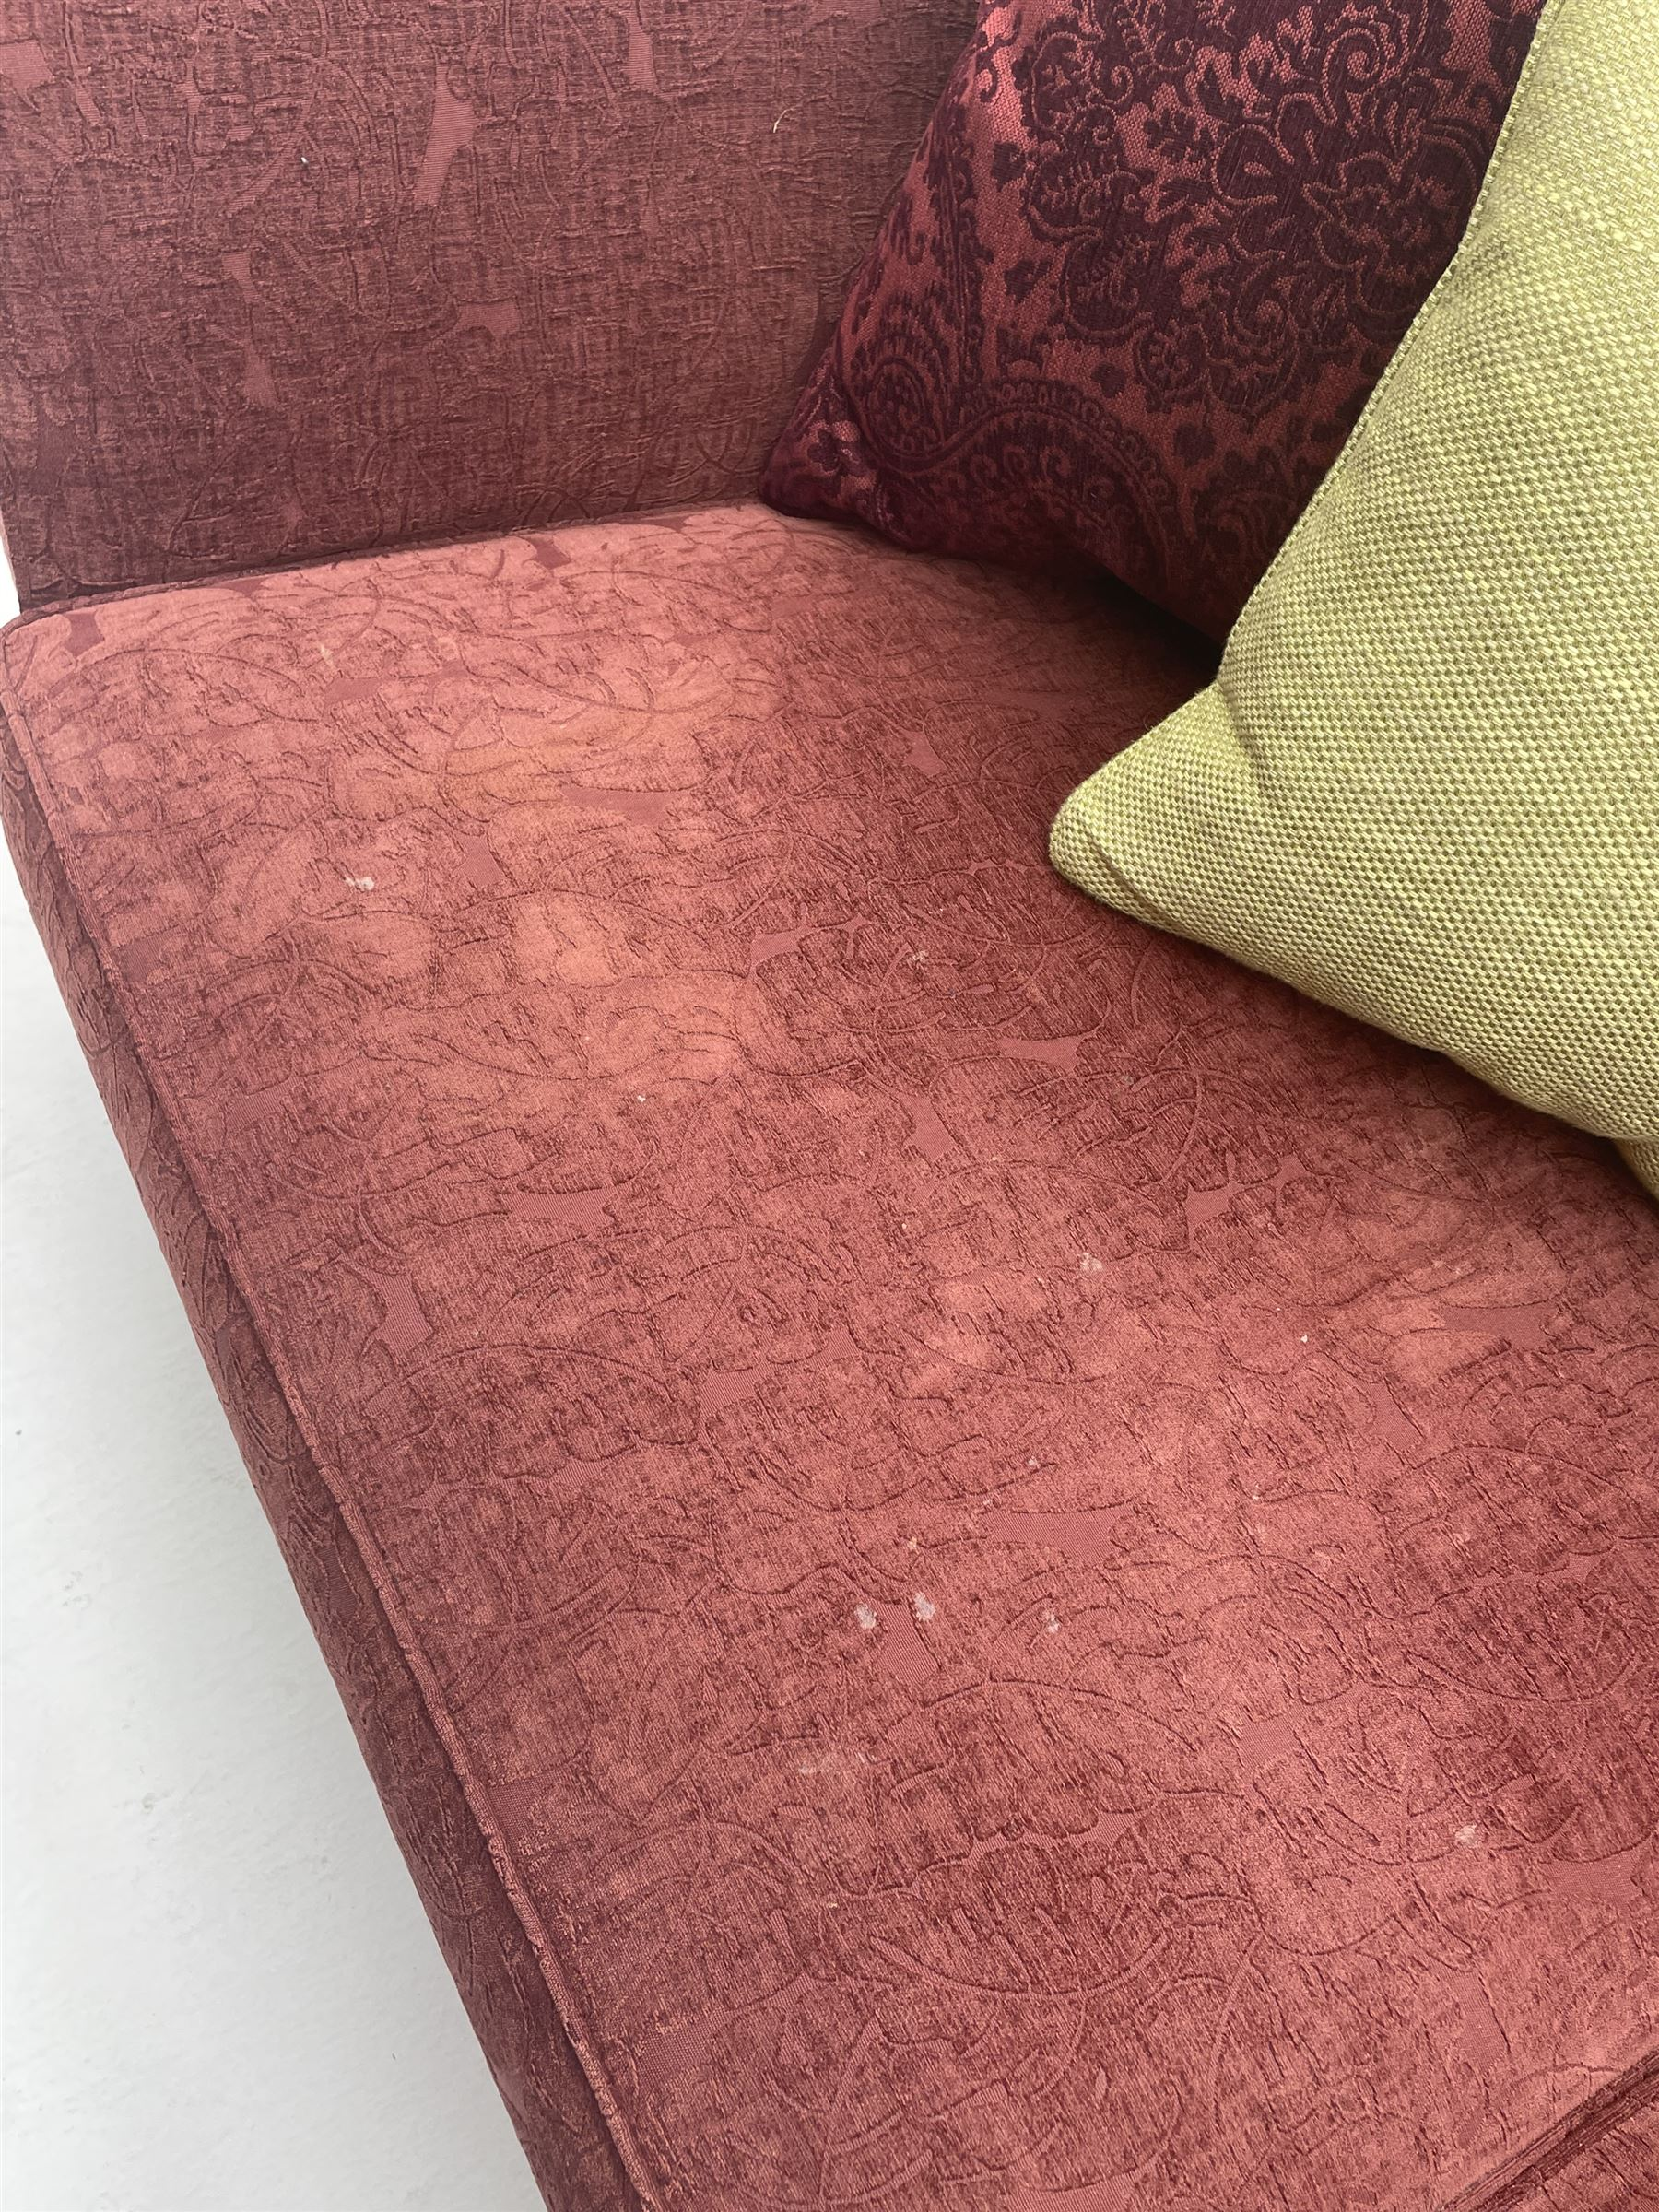 Multi-York - three seat sofa upholstered in red patterned fabric with contrasting feather scatter cu - Image 2 of 4